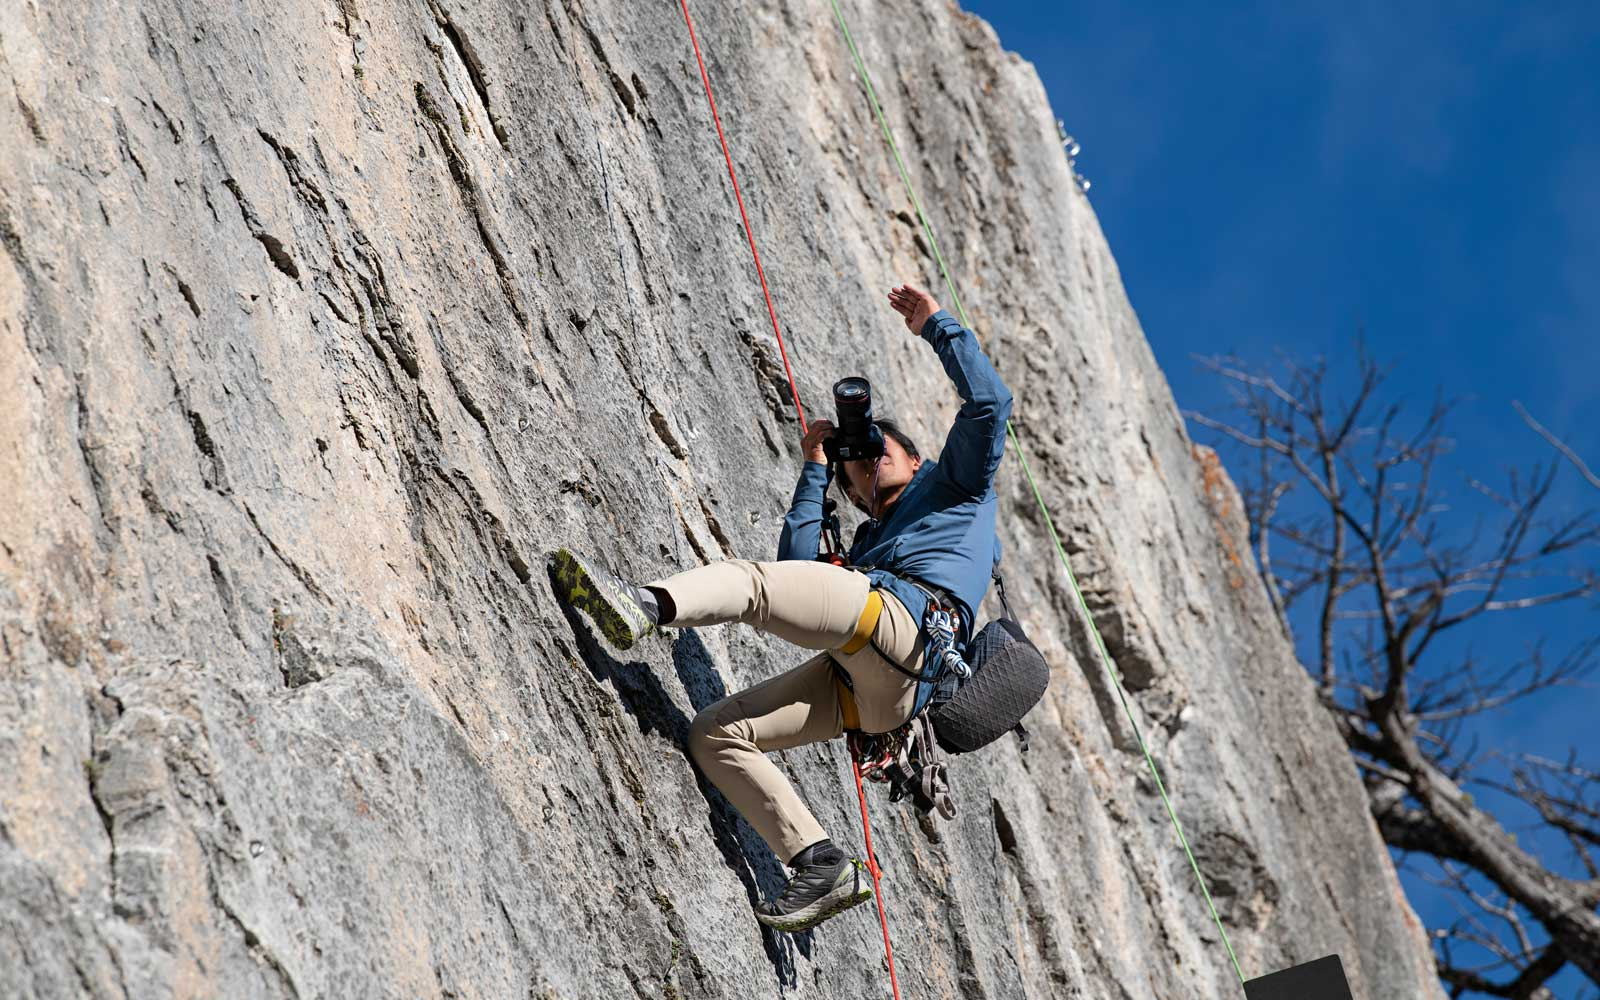 Photographer Jimmy Chin shares his tips and tricks for budding adventure photographers.